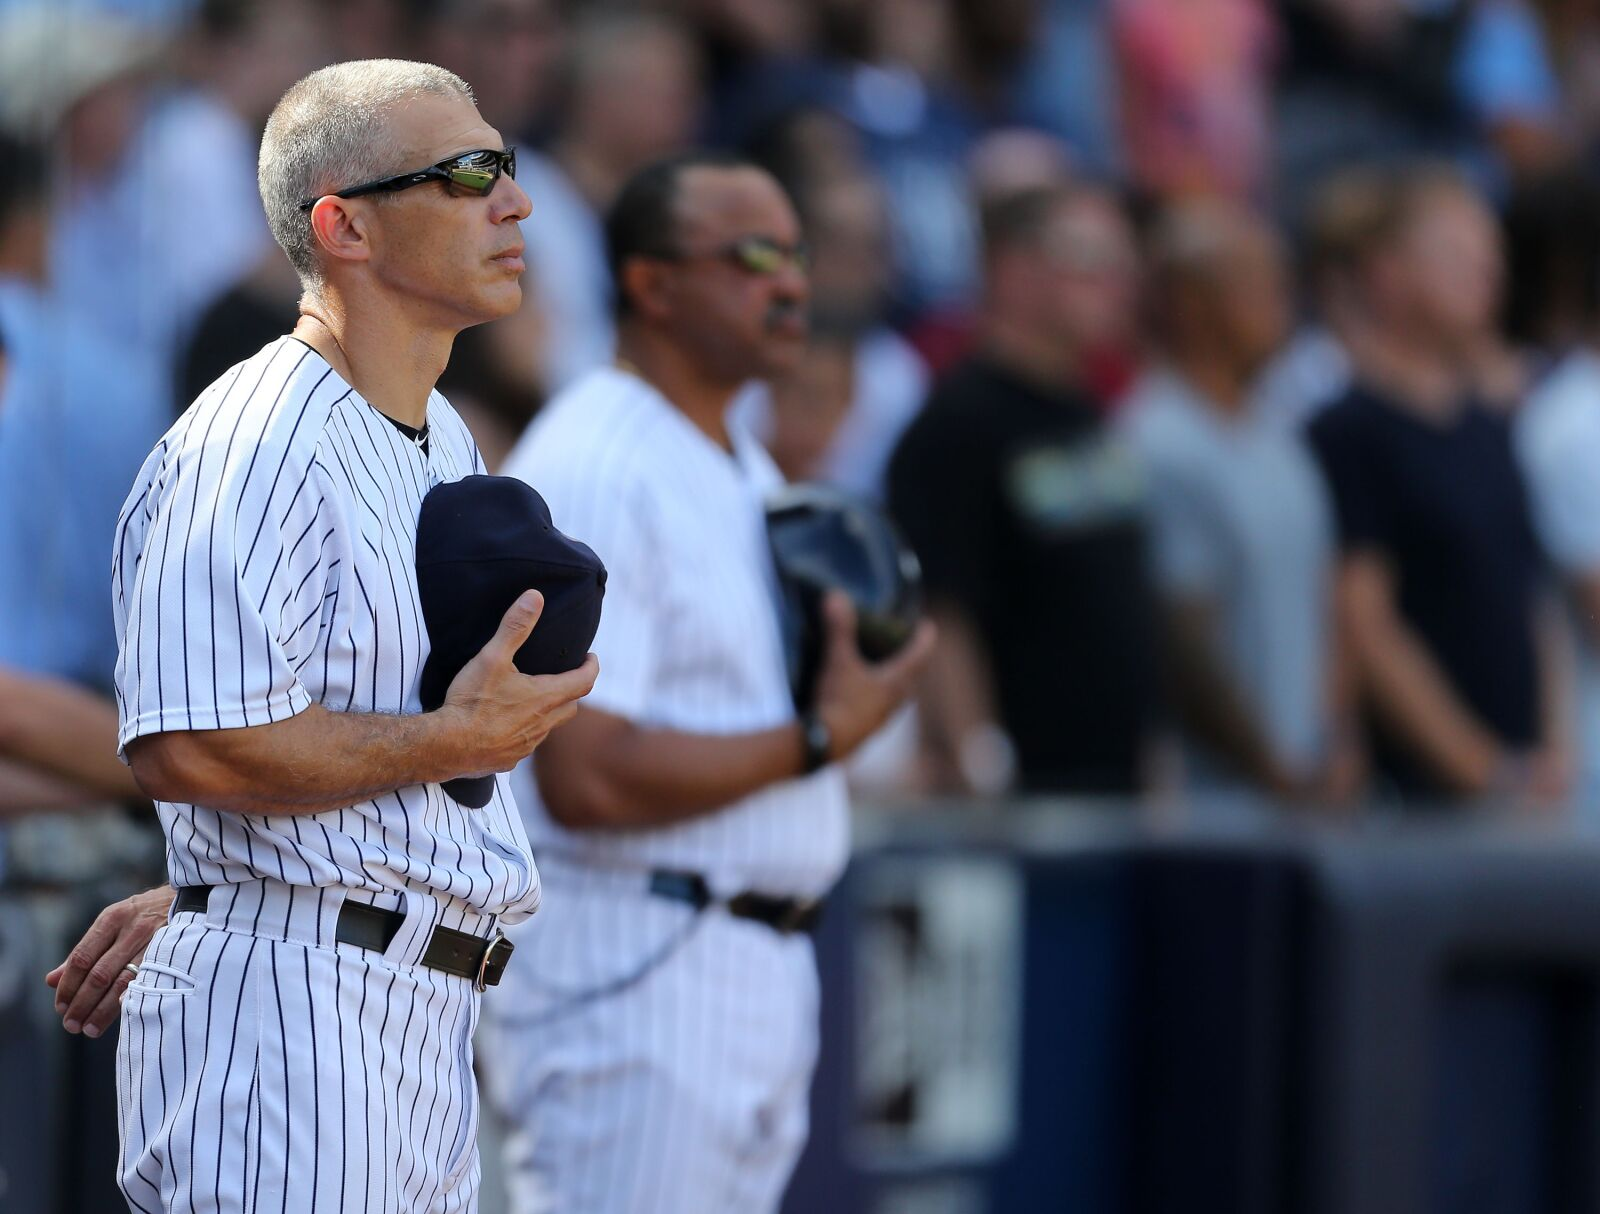 Yankees give Kate Smith's 'God Bless America' the heave-ho